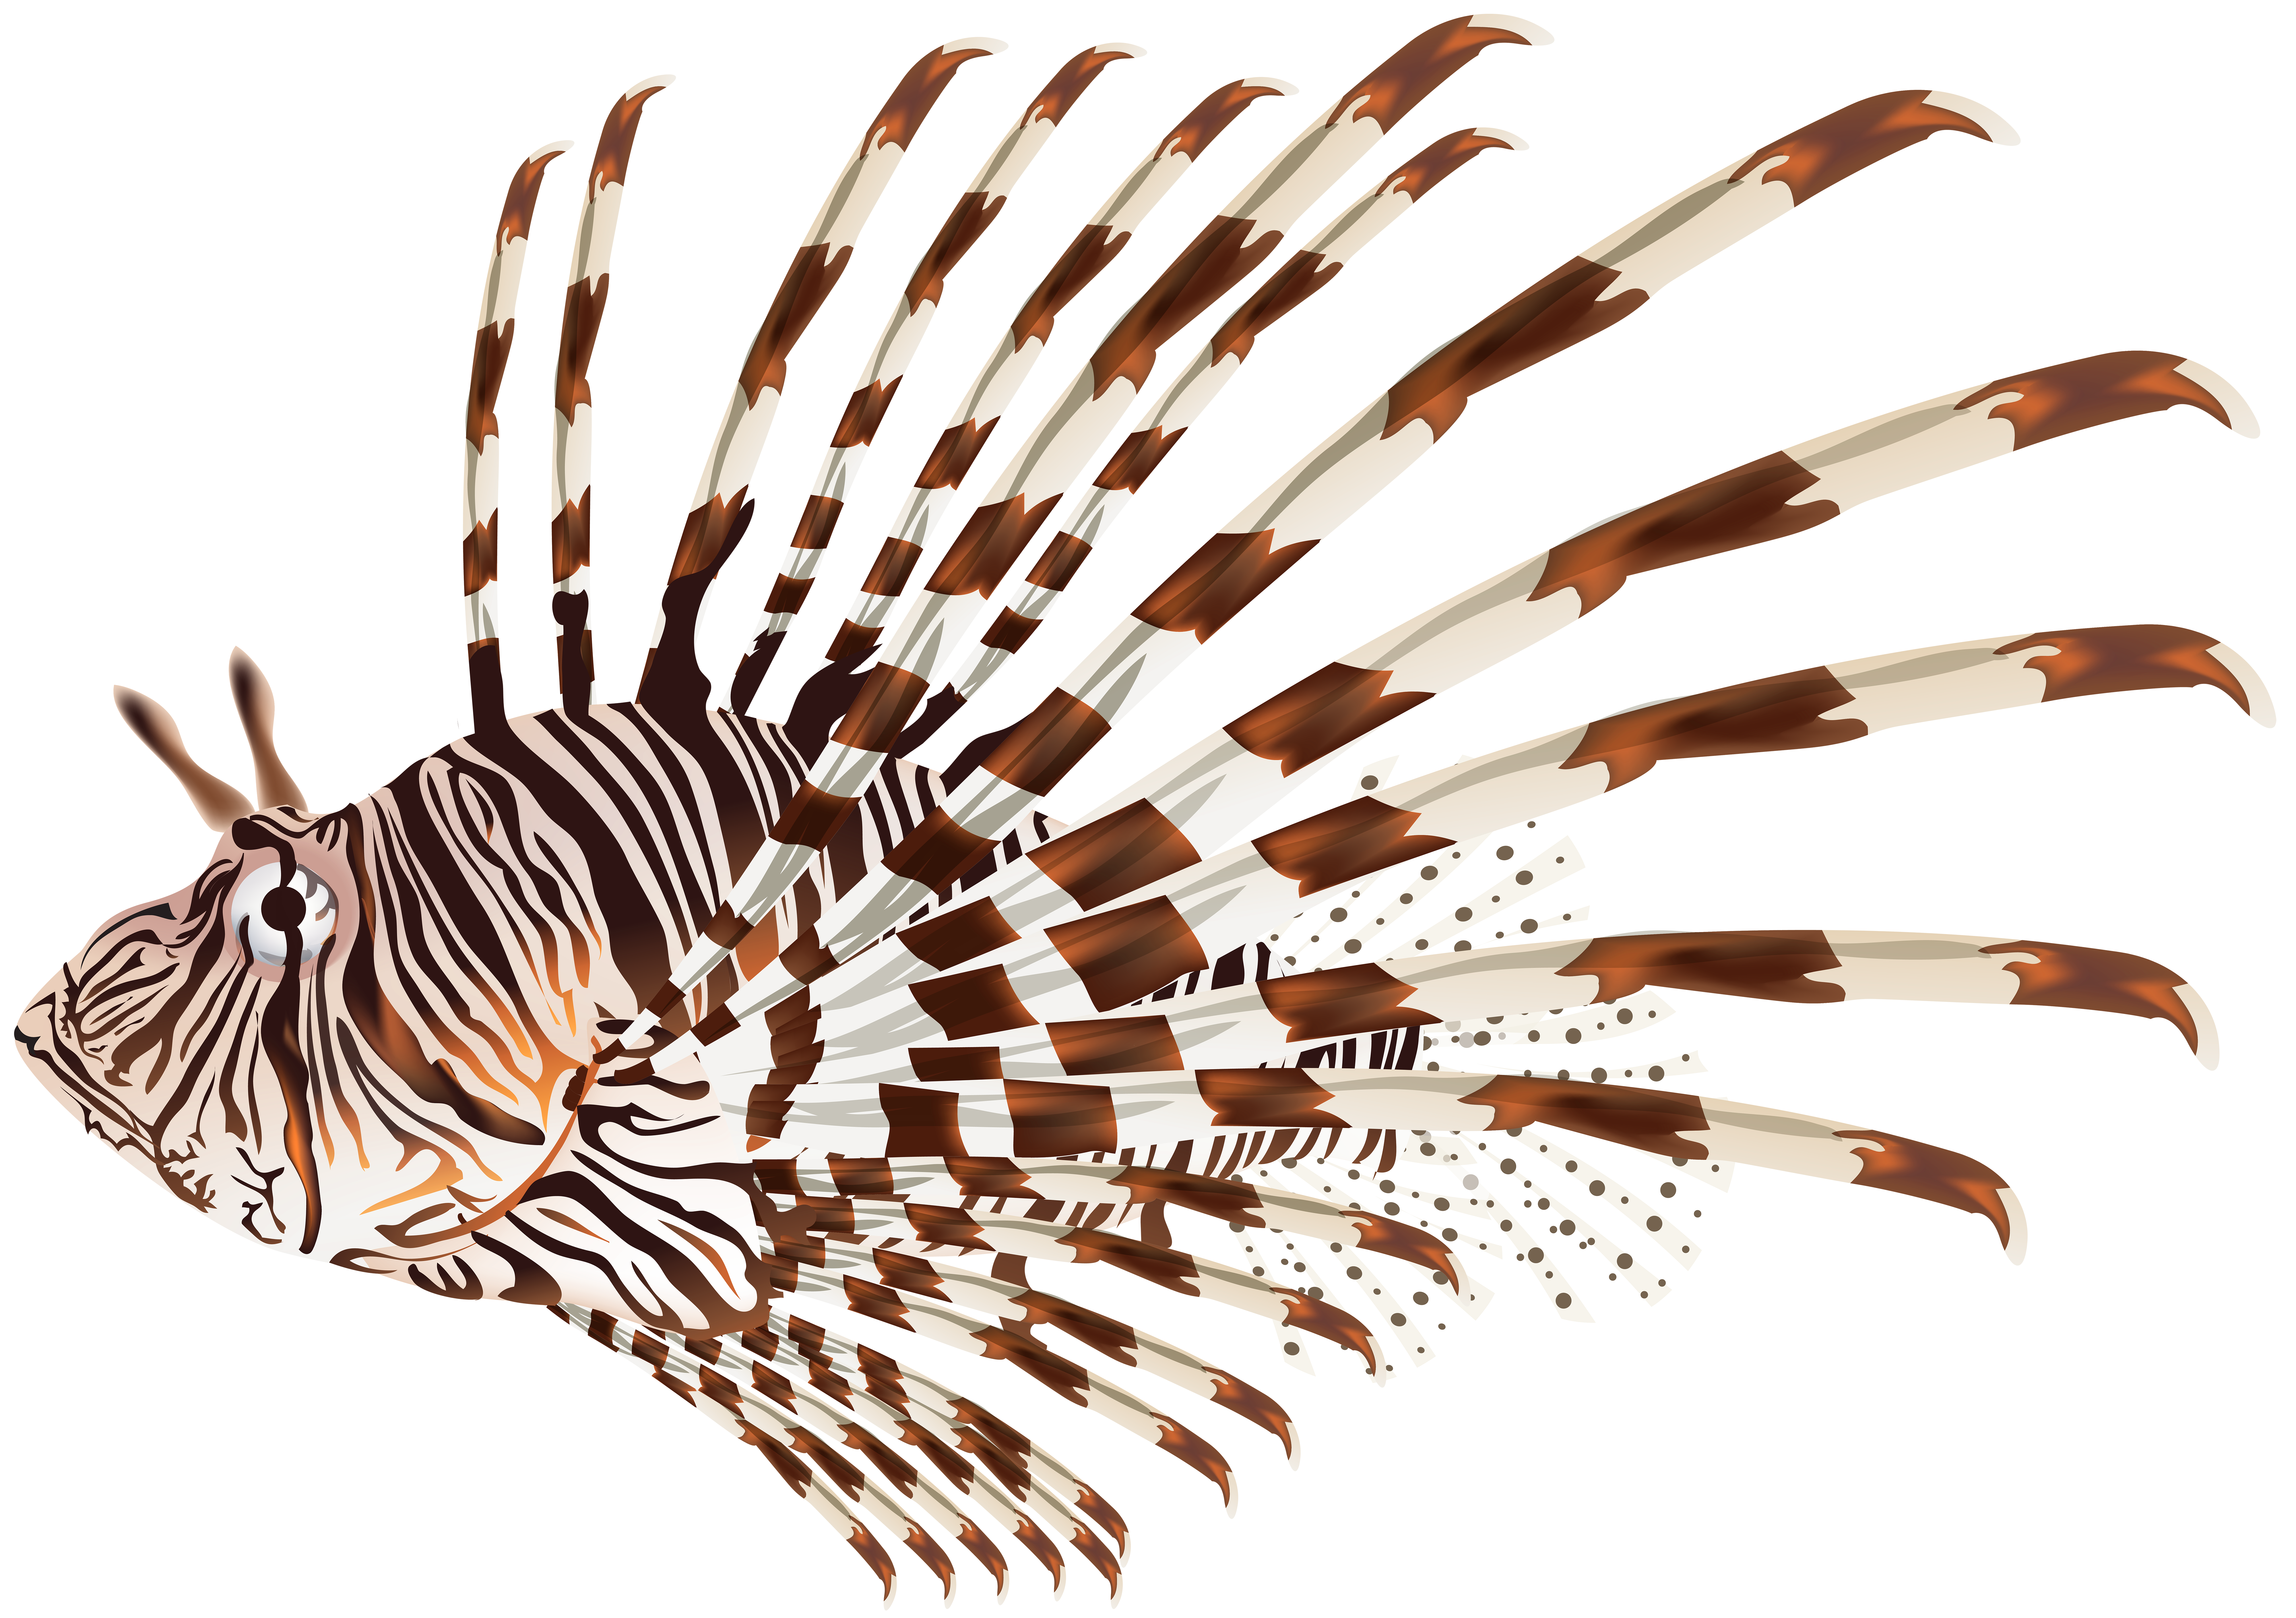 Lionfish clipart #4, Download drawings